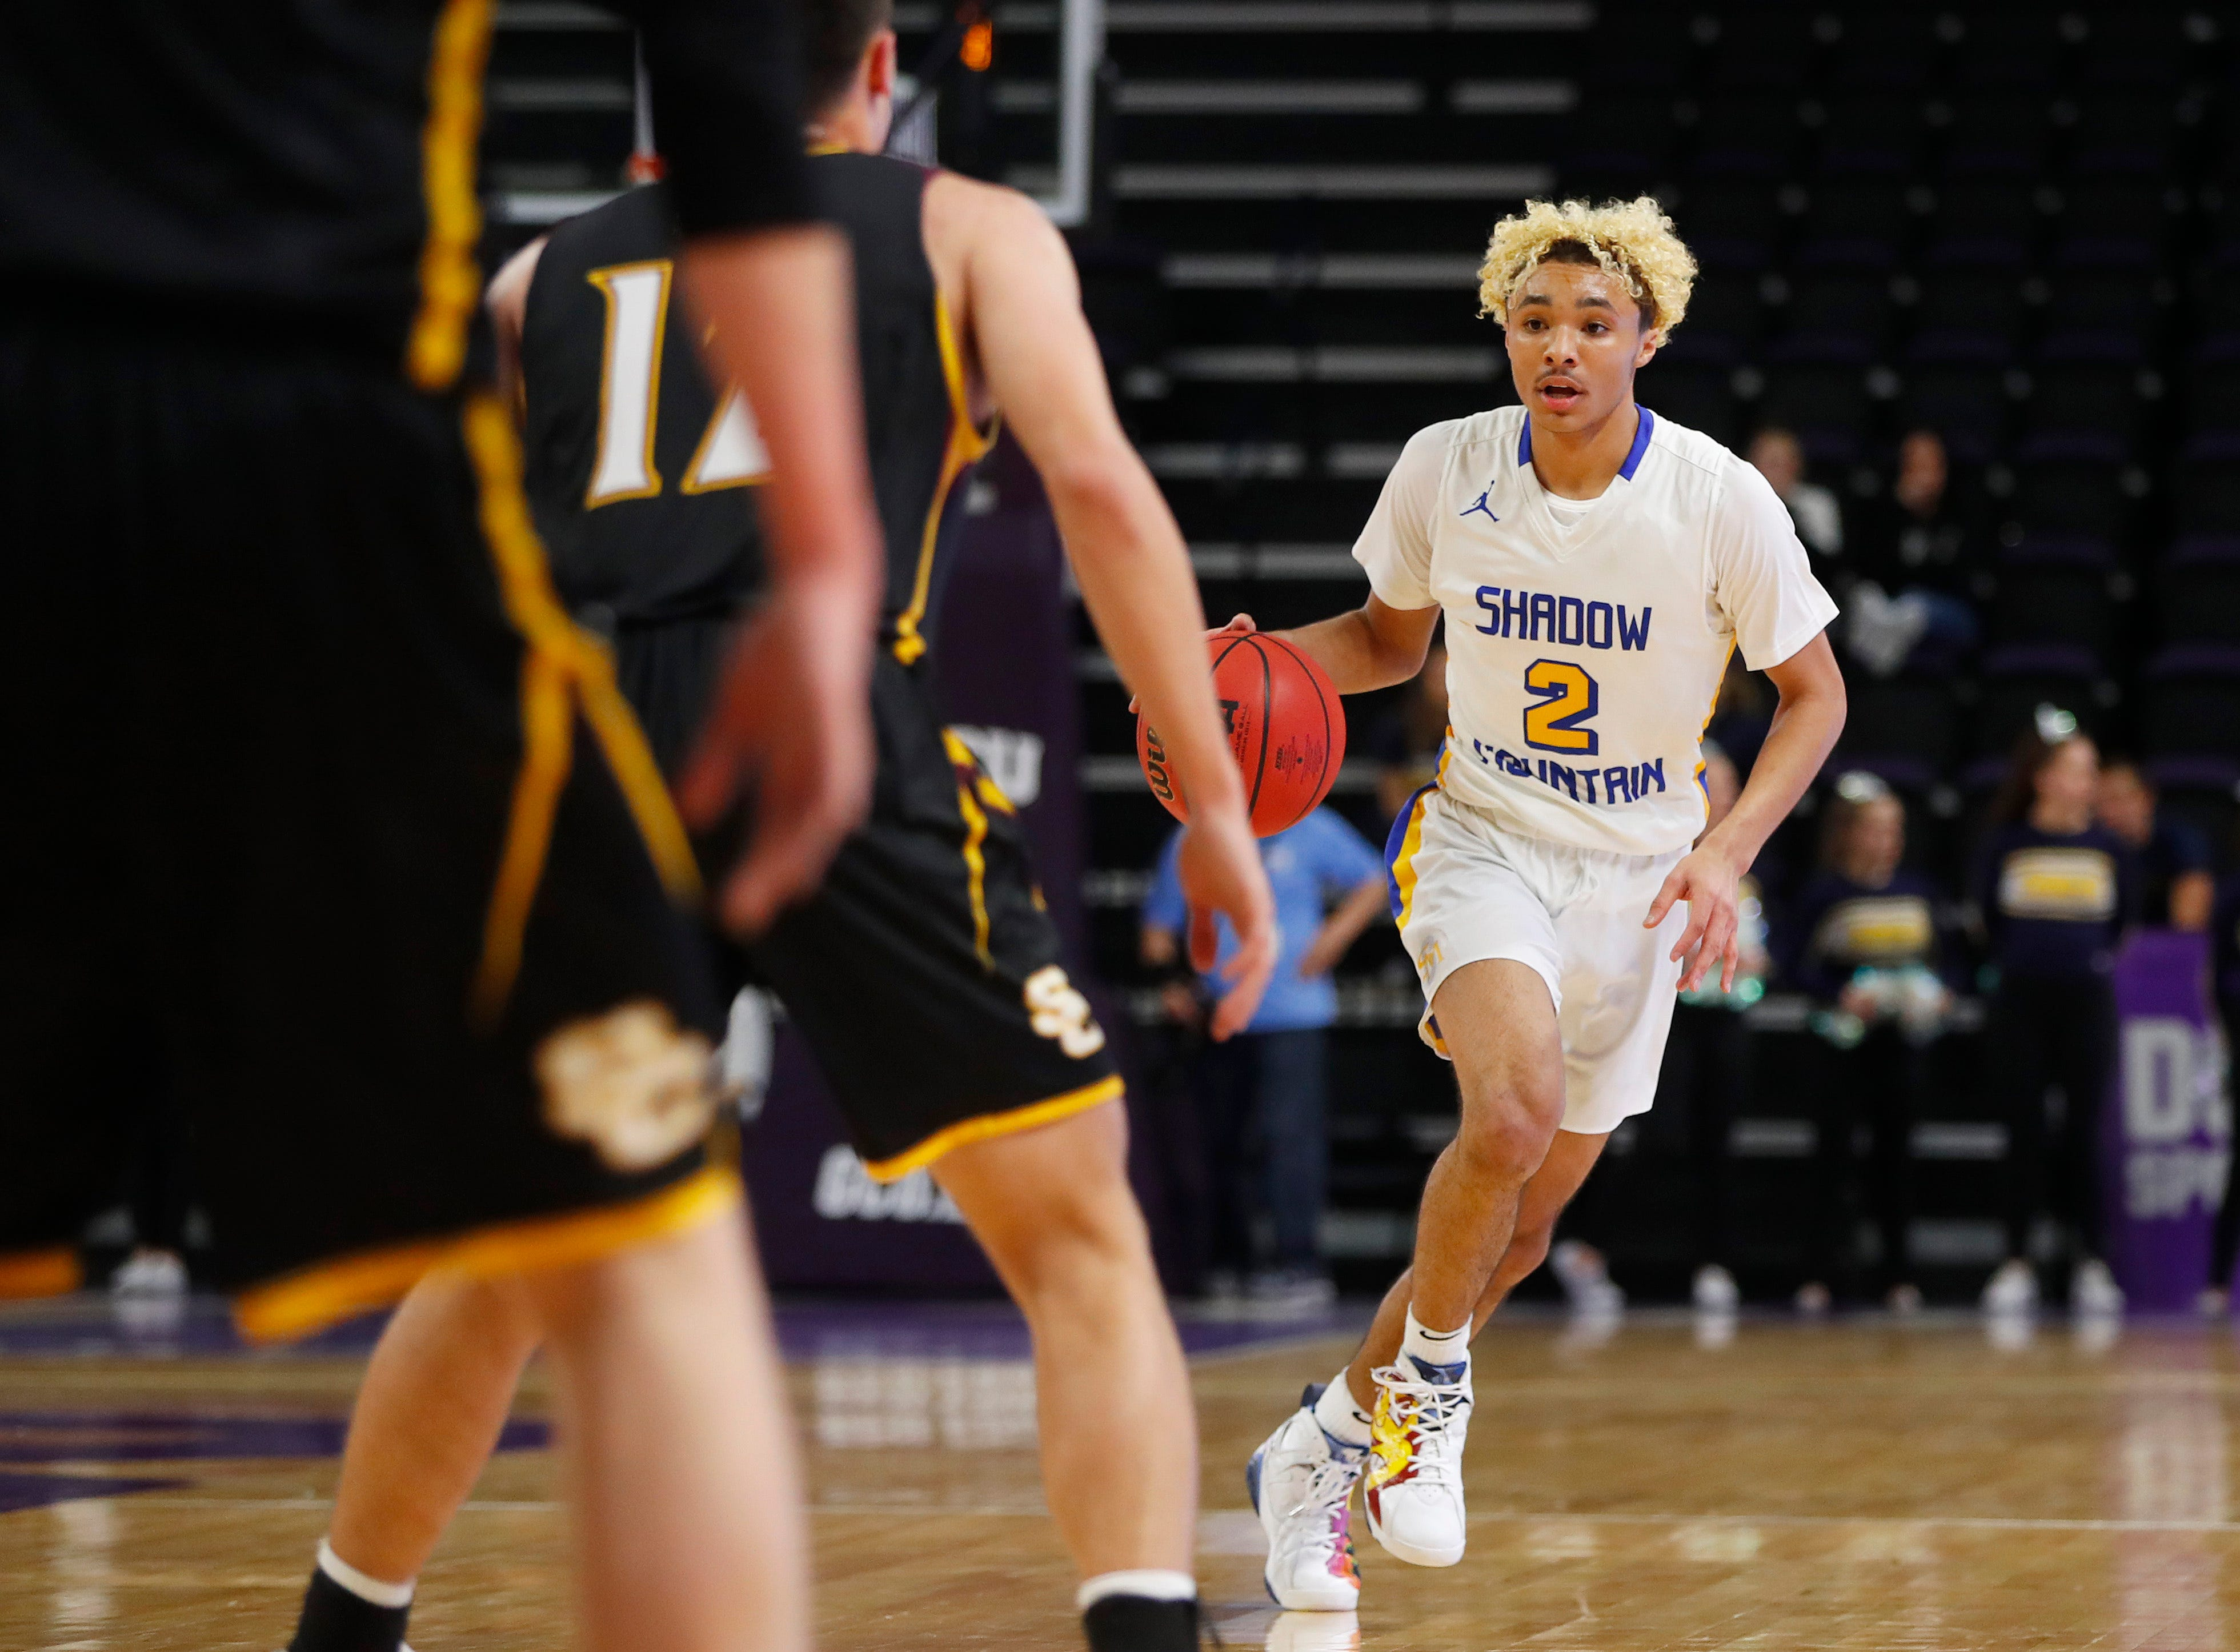 Shadow Mountain's Jaelen House (2) dribbles up the court against Salpointe Catholic during first half of the 4A boys basketball semifinal game at Grand Canyon University Arena in Phoenix, Ariz. on February 22, 2019.